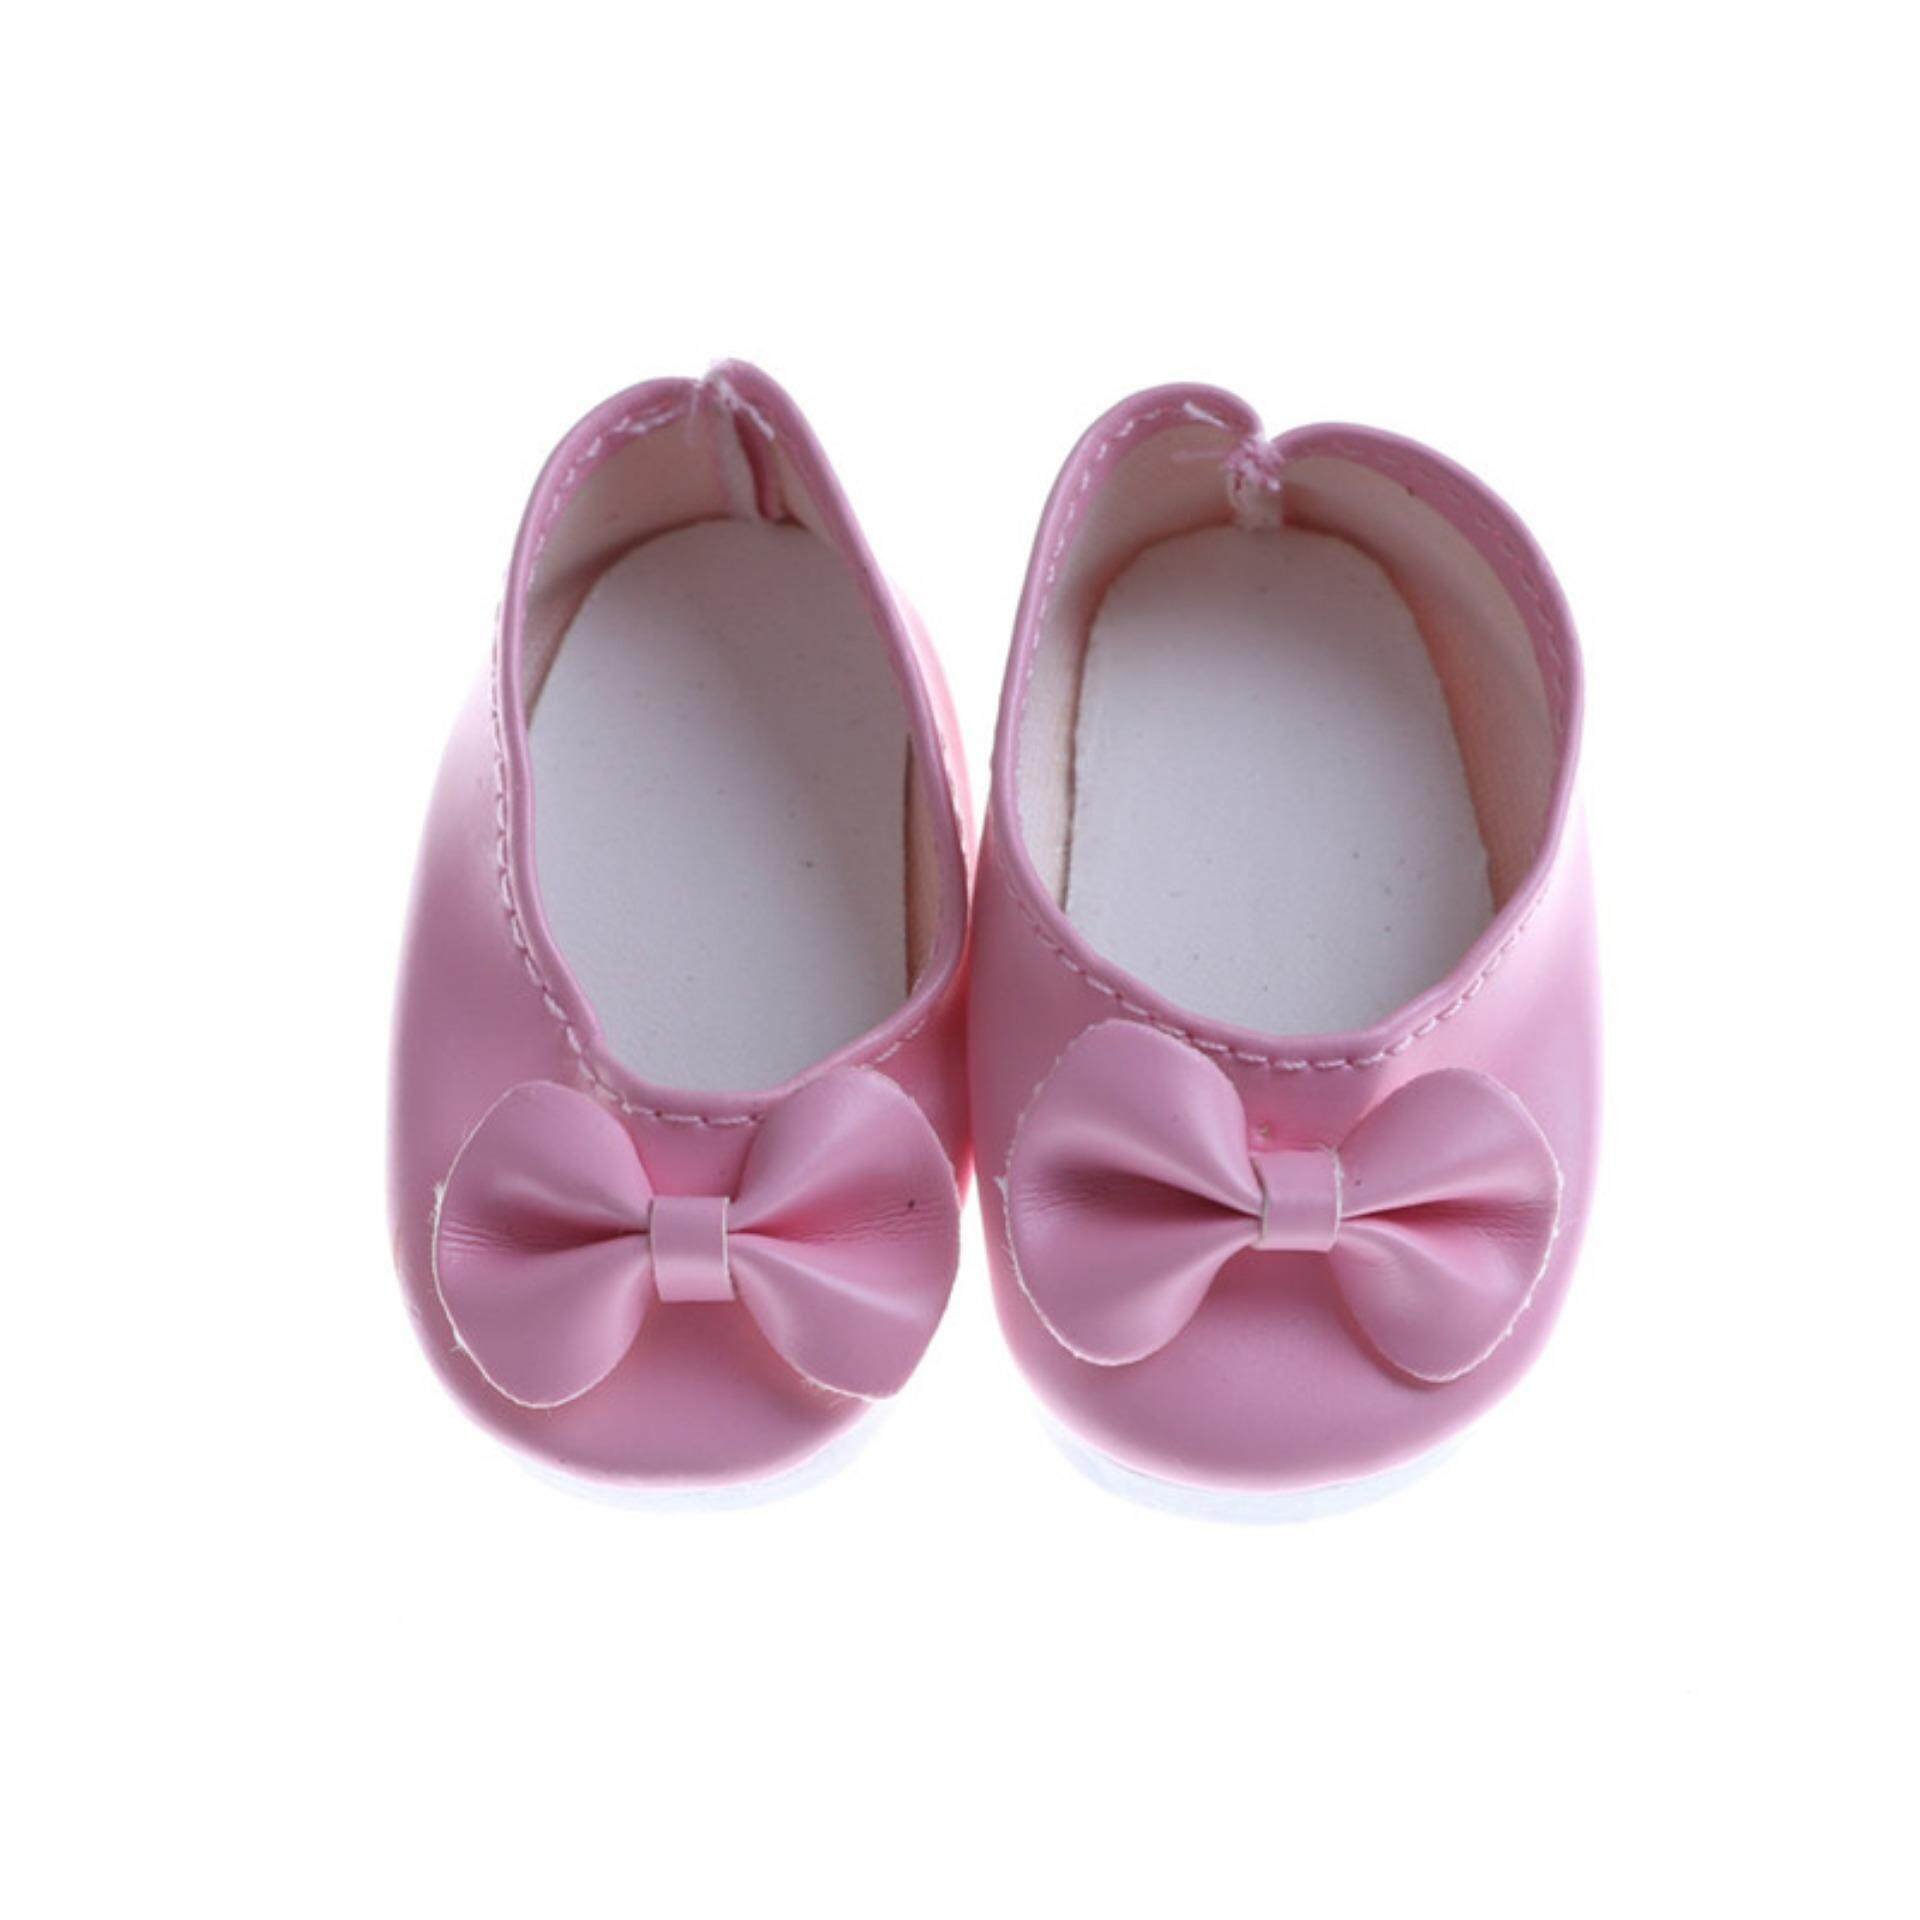 Doll Shoes Leather Shoes Fit 14.5 Inch American Dolls Accessories Dragon  Store Free Shipping 44d7f8b40b1d